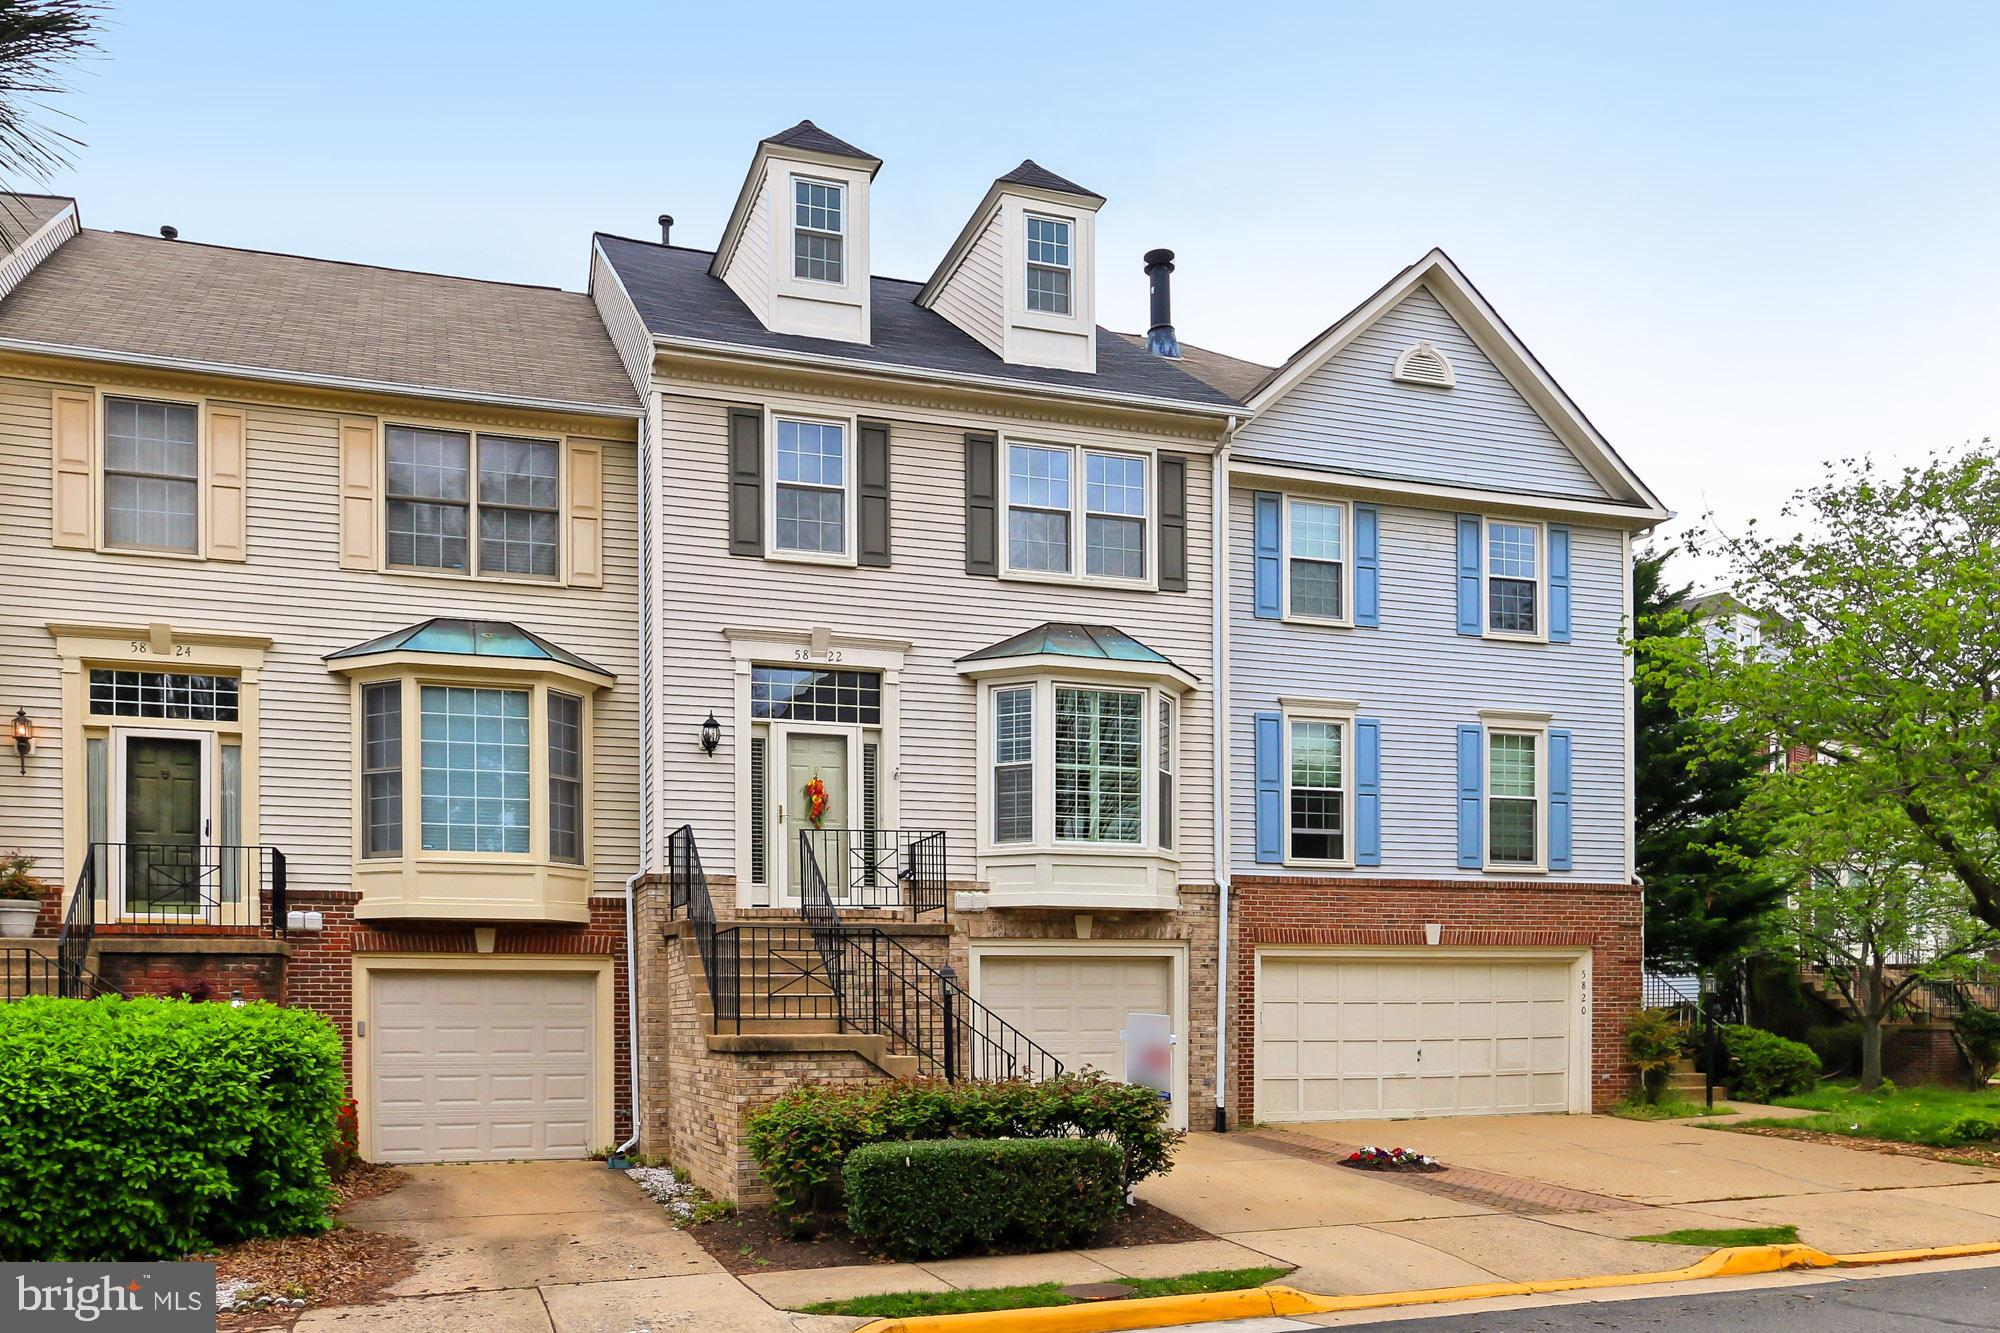 Beautifully upgraded townhome located in the heart of Kingstowne community. Popular EASTON II model with loft.  The property features three bedrooms, three full and one half baths, spacious master suite with loft, two gas fireplaces. One car garage with full driveway.  Spacious deck overlooking trees- privacy in the back. Owners upgrades include: new roof (2018), HVAC (2015), all new Thompson Creek windows and door, plantation shutters, stainless steel appliances, new garage door and motor (2017), hardwoods throughout, maintenance free deck, custom built ins, security system, fresh neutral paint throughout, brick patio. Both TV convey. Perfect move in condition!!!